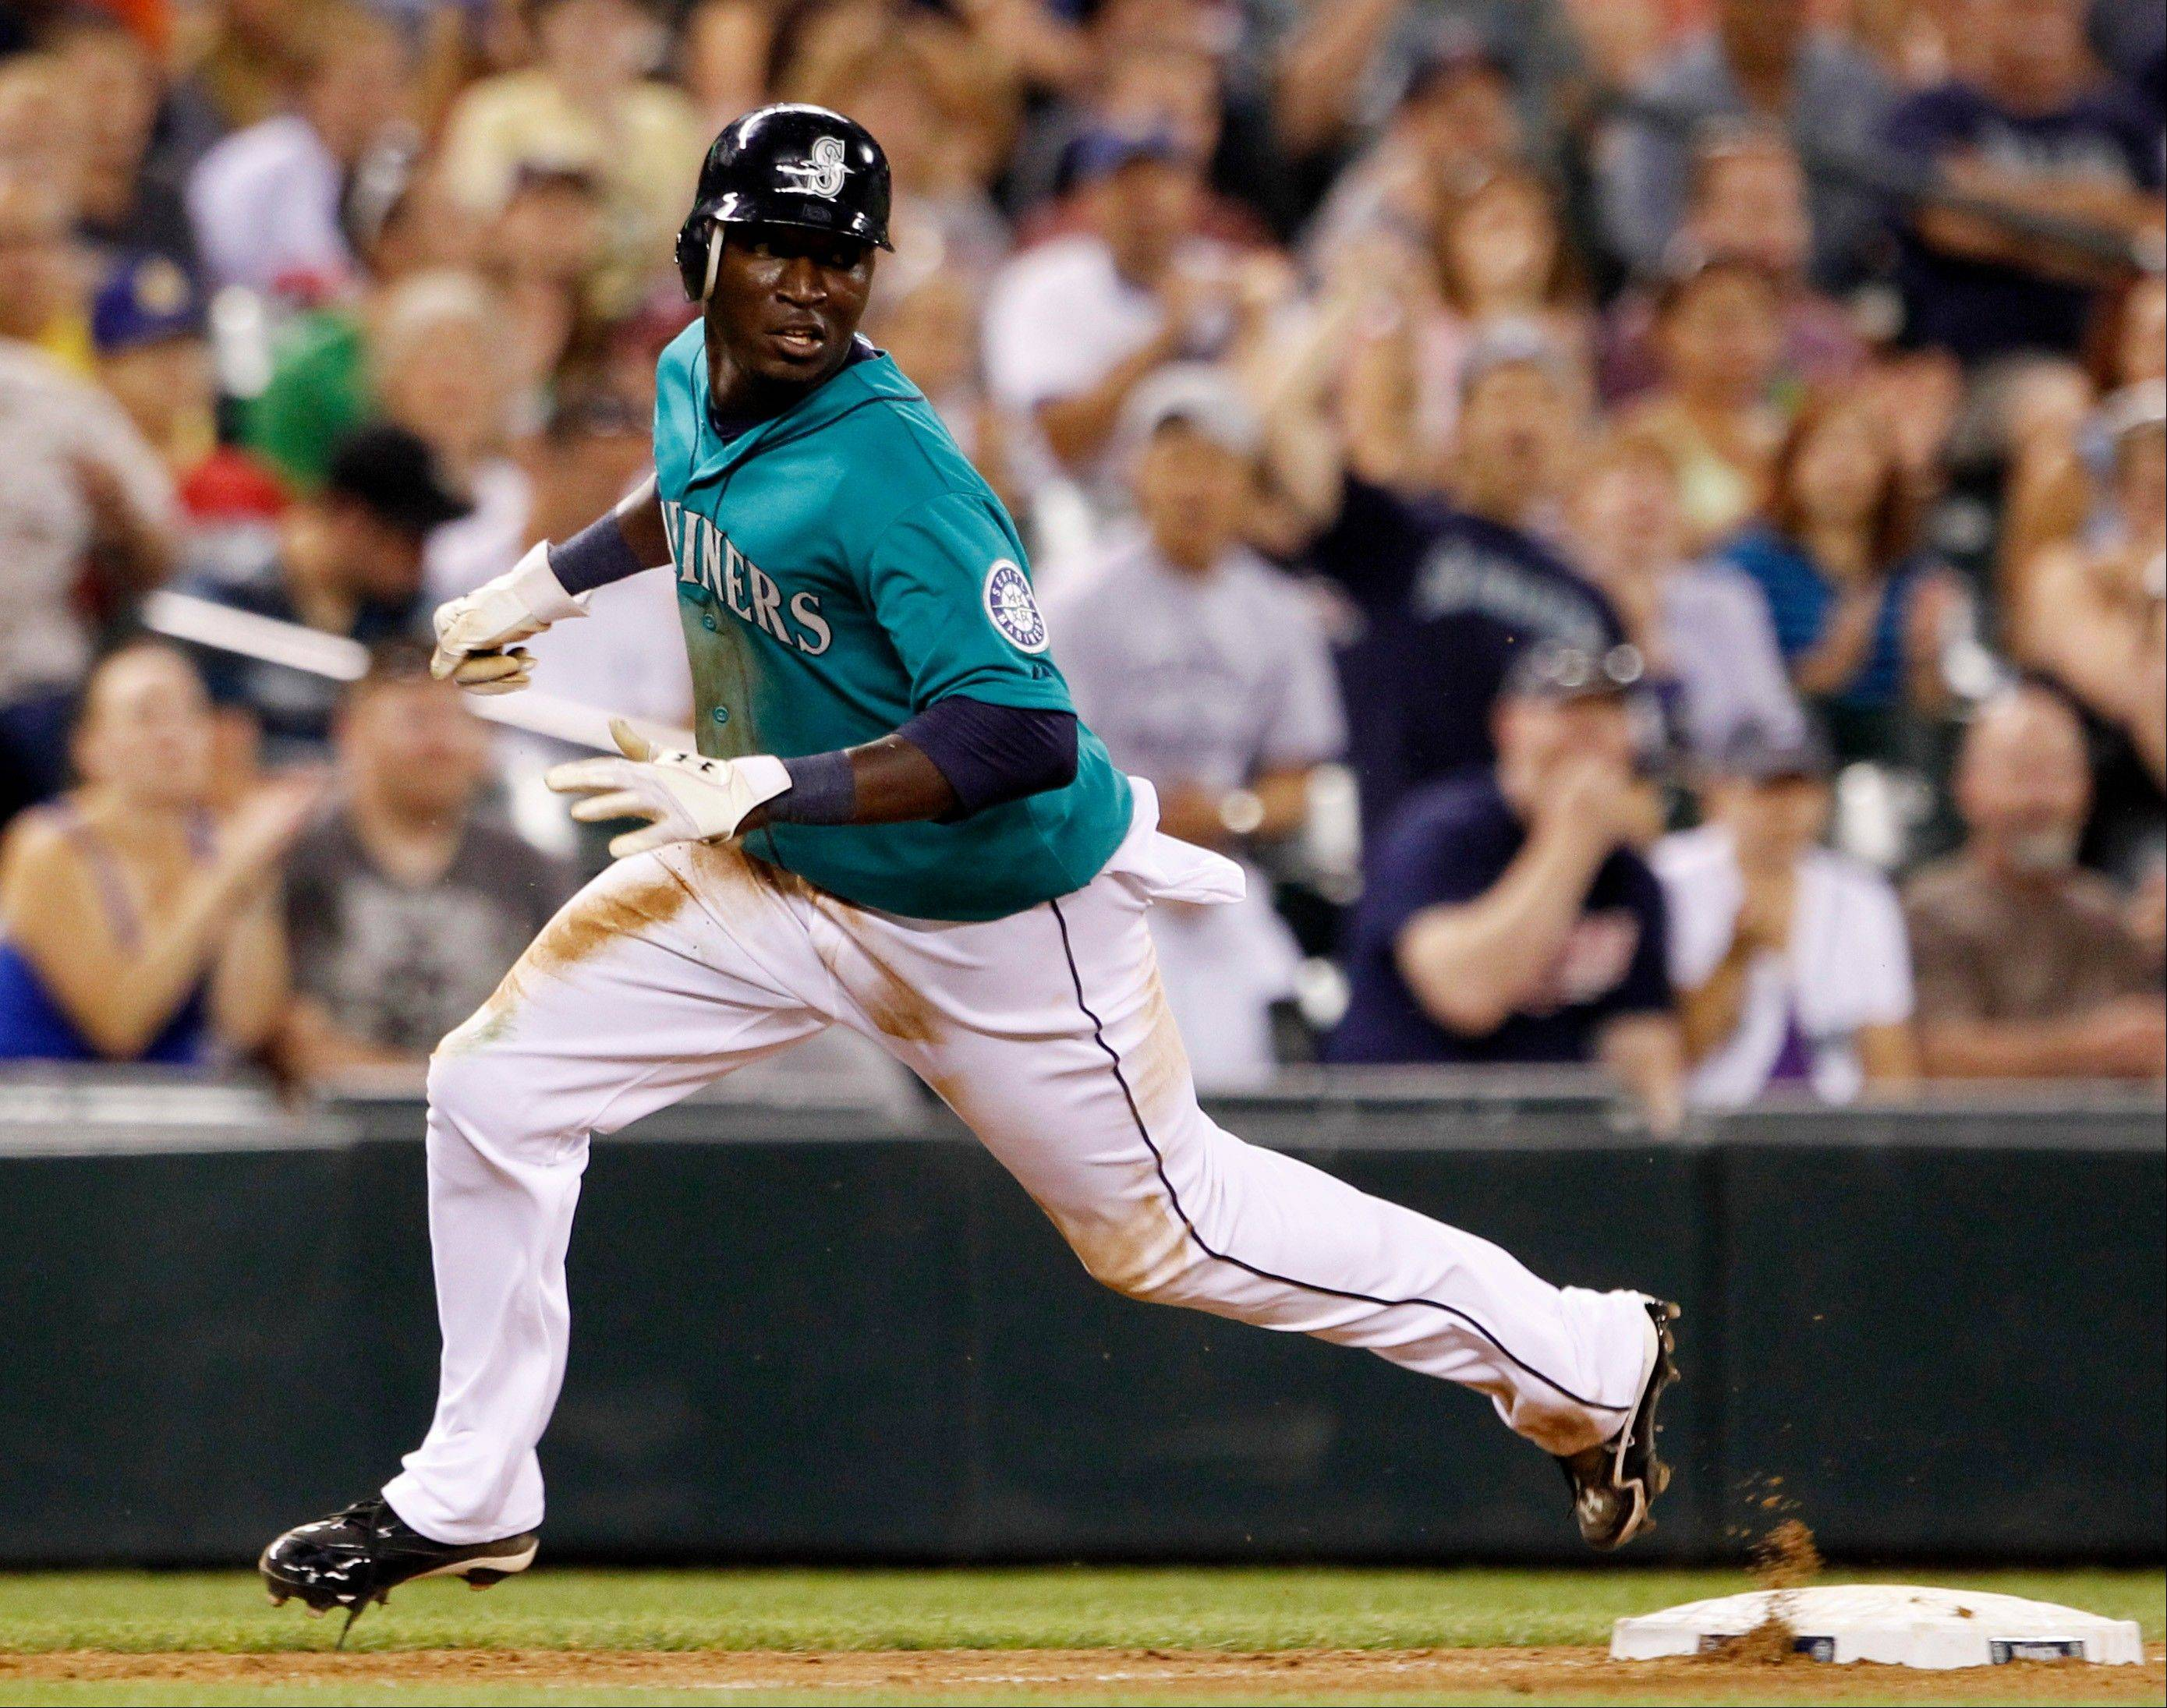 The Mariners' Trayvon Robinson comes around to score against the Minnesota Twins in the sixth inning Friday in Seattle.